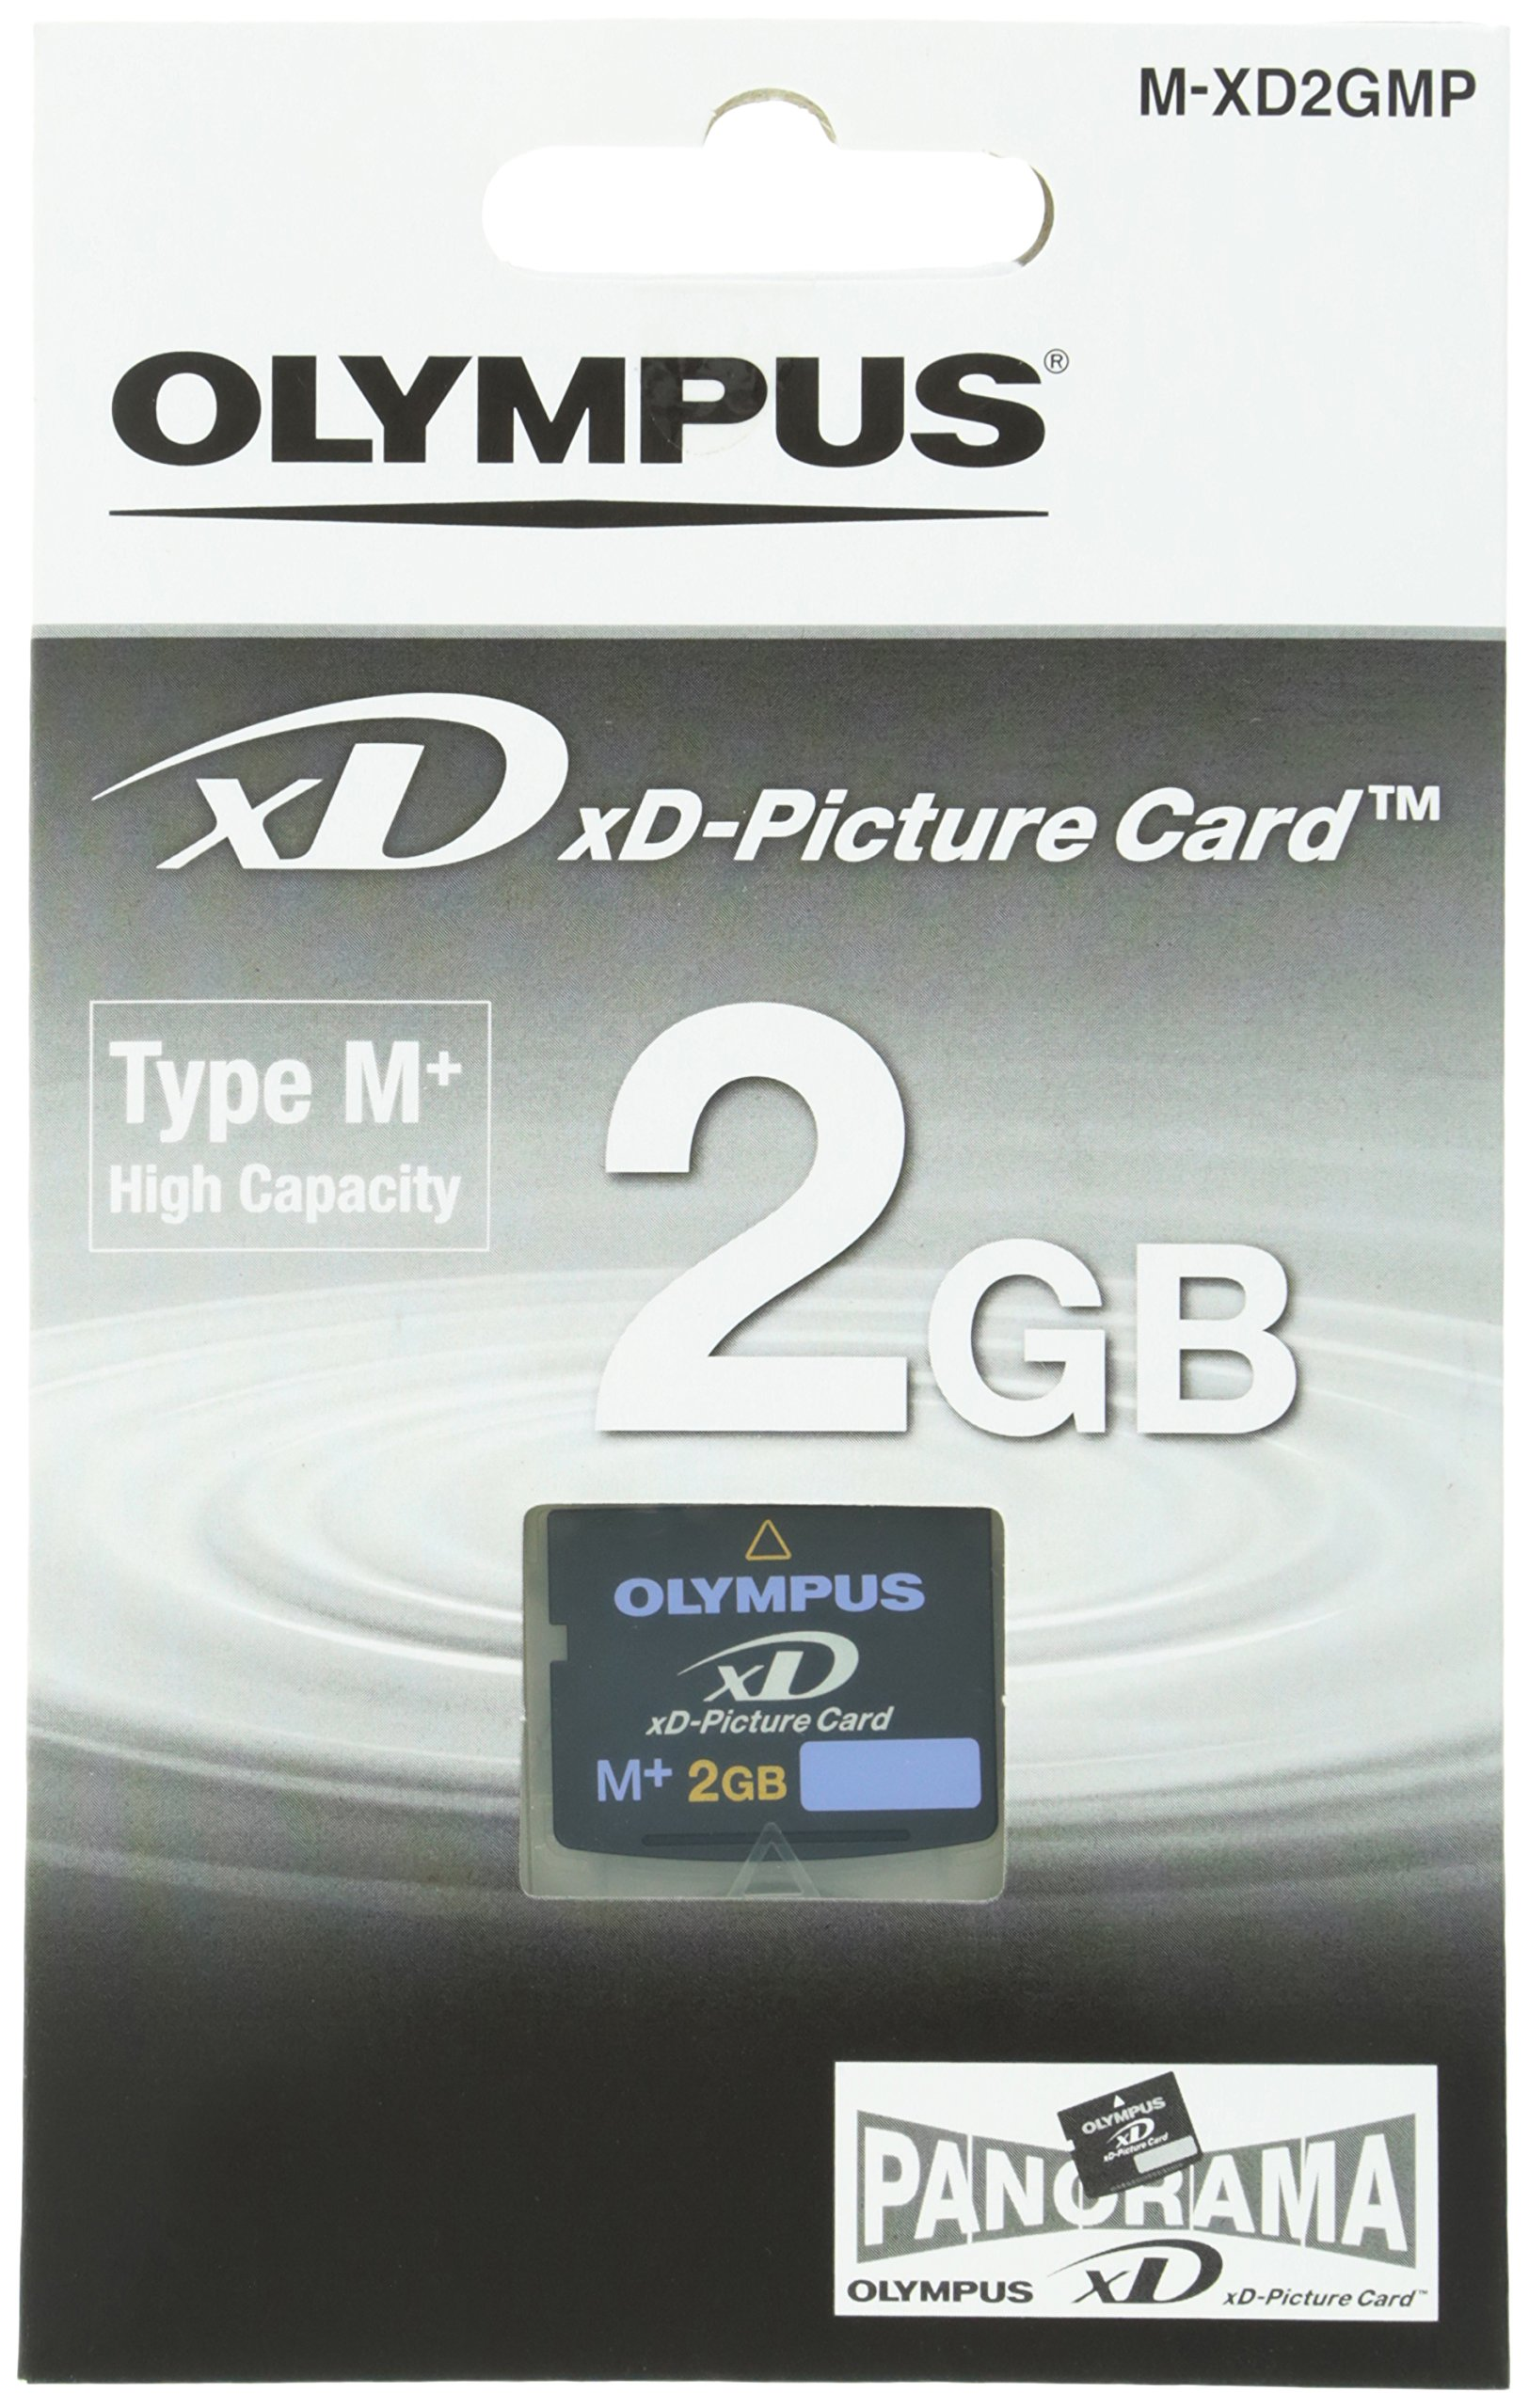 OLYMPUS 2GB XD Picture card Type M+ Retail Package by Olympus